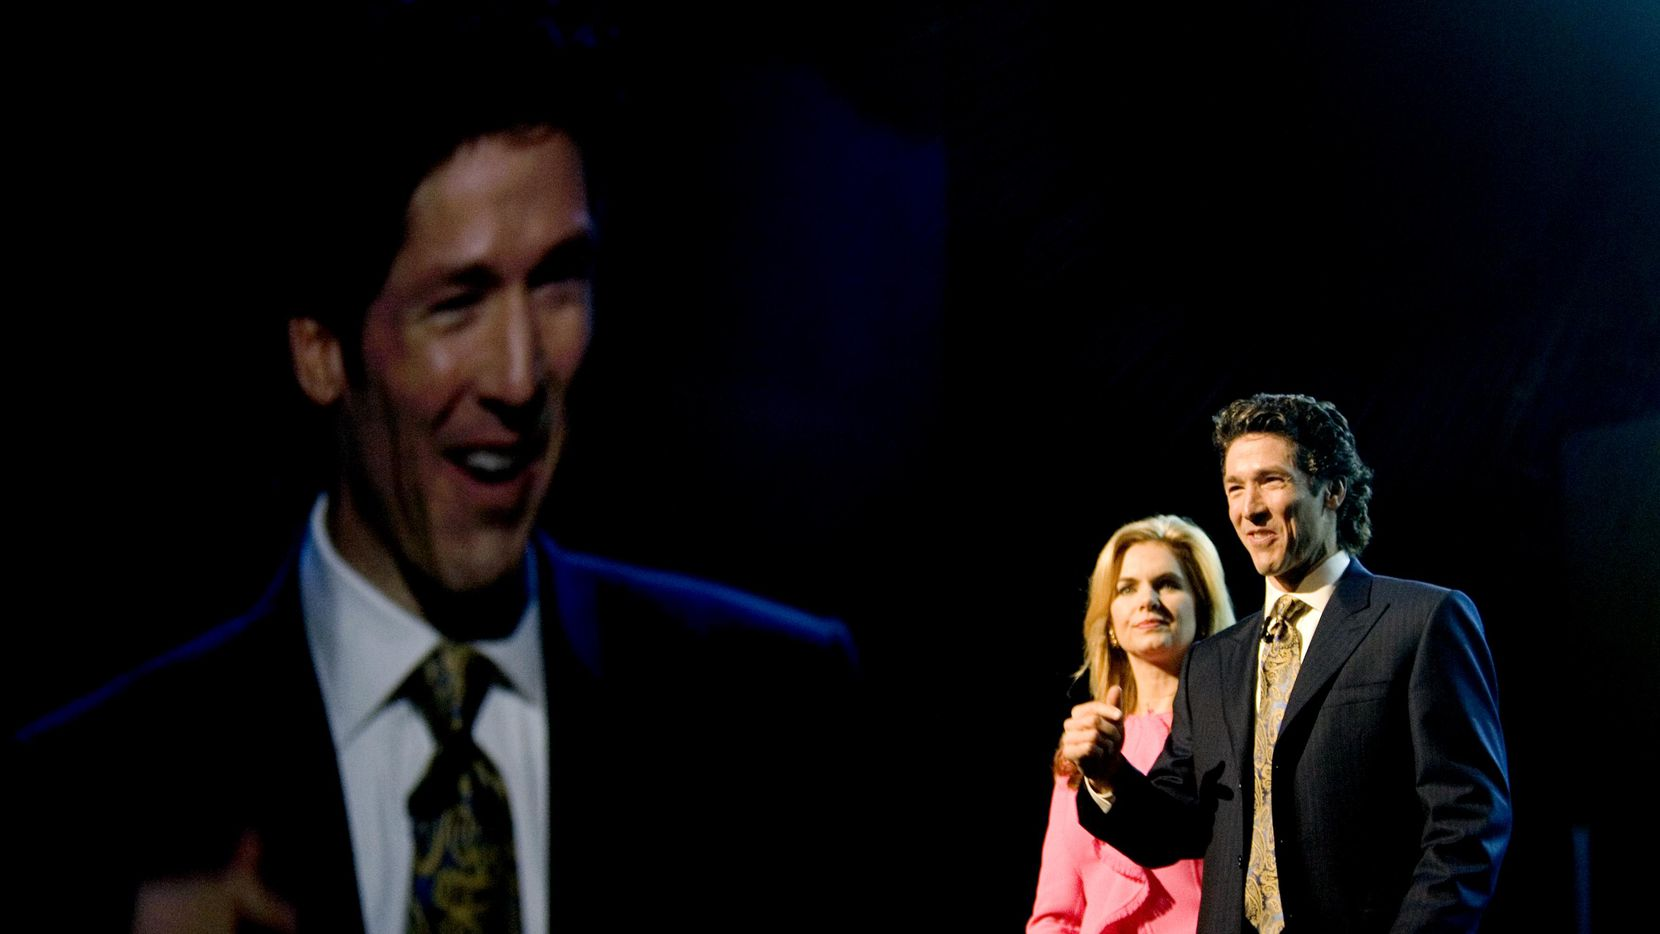 Joel Osteen preached at the American Airlines Center in Dallas in October 2008. Mr. Osteen's Lakewood Church, in Houston, is one of the largest in the United States.